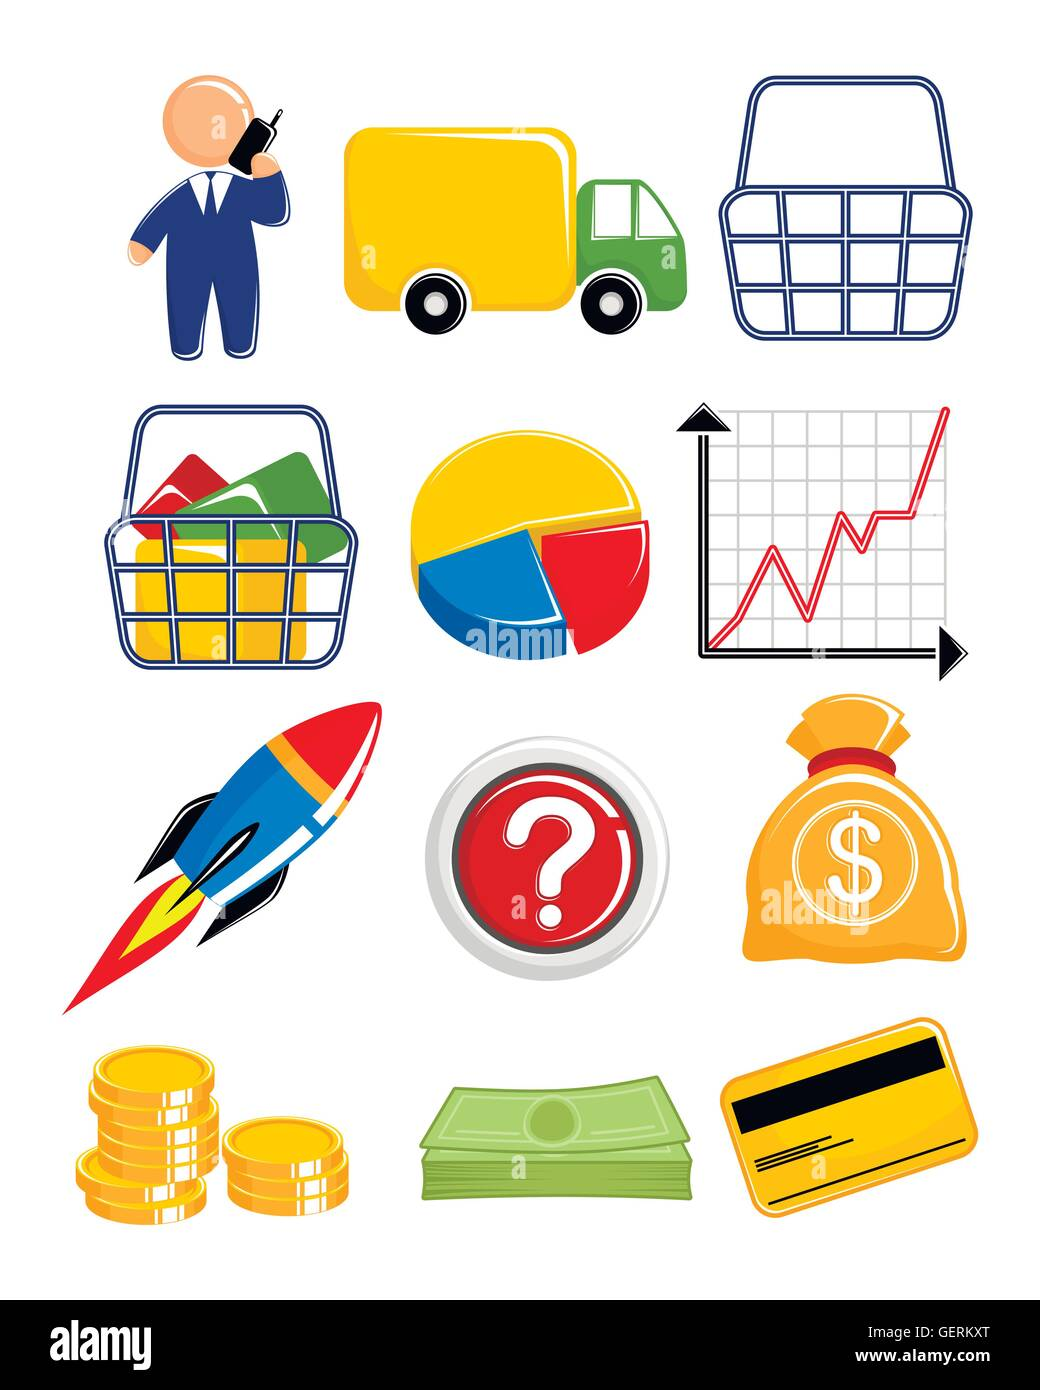 Vector illustration of a web icons set - Stock Vector